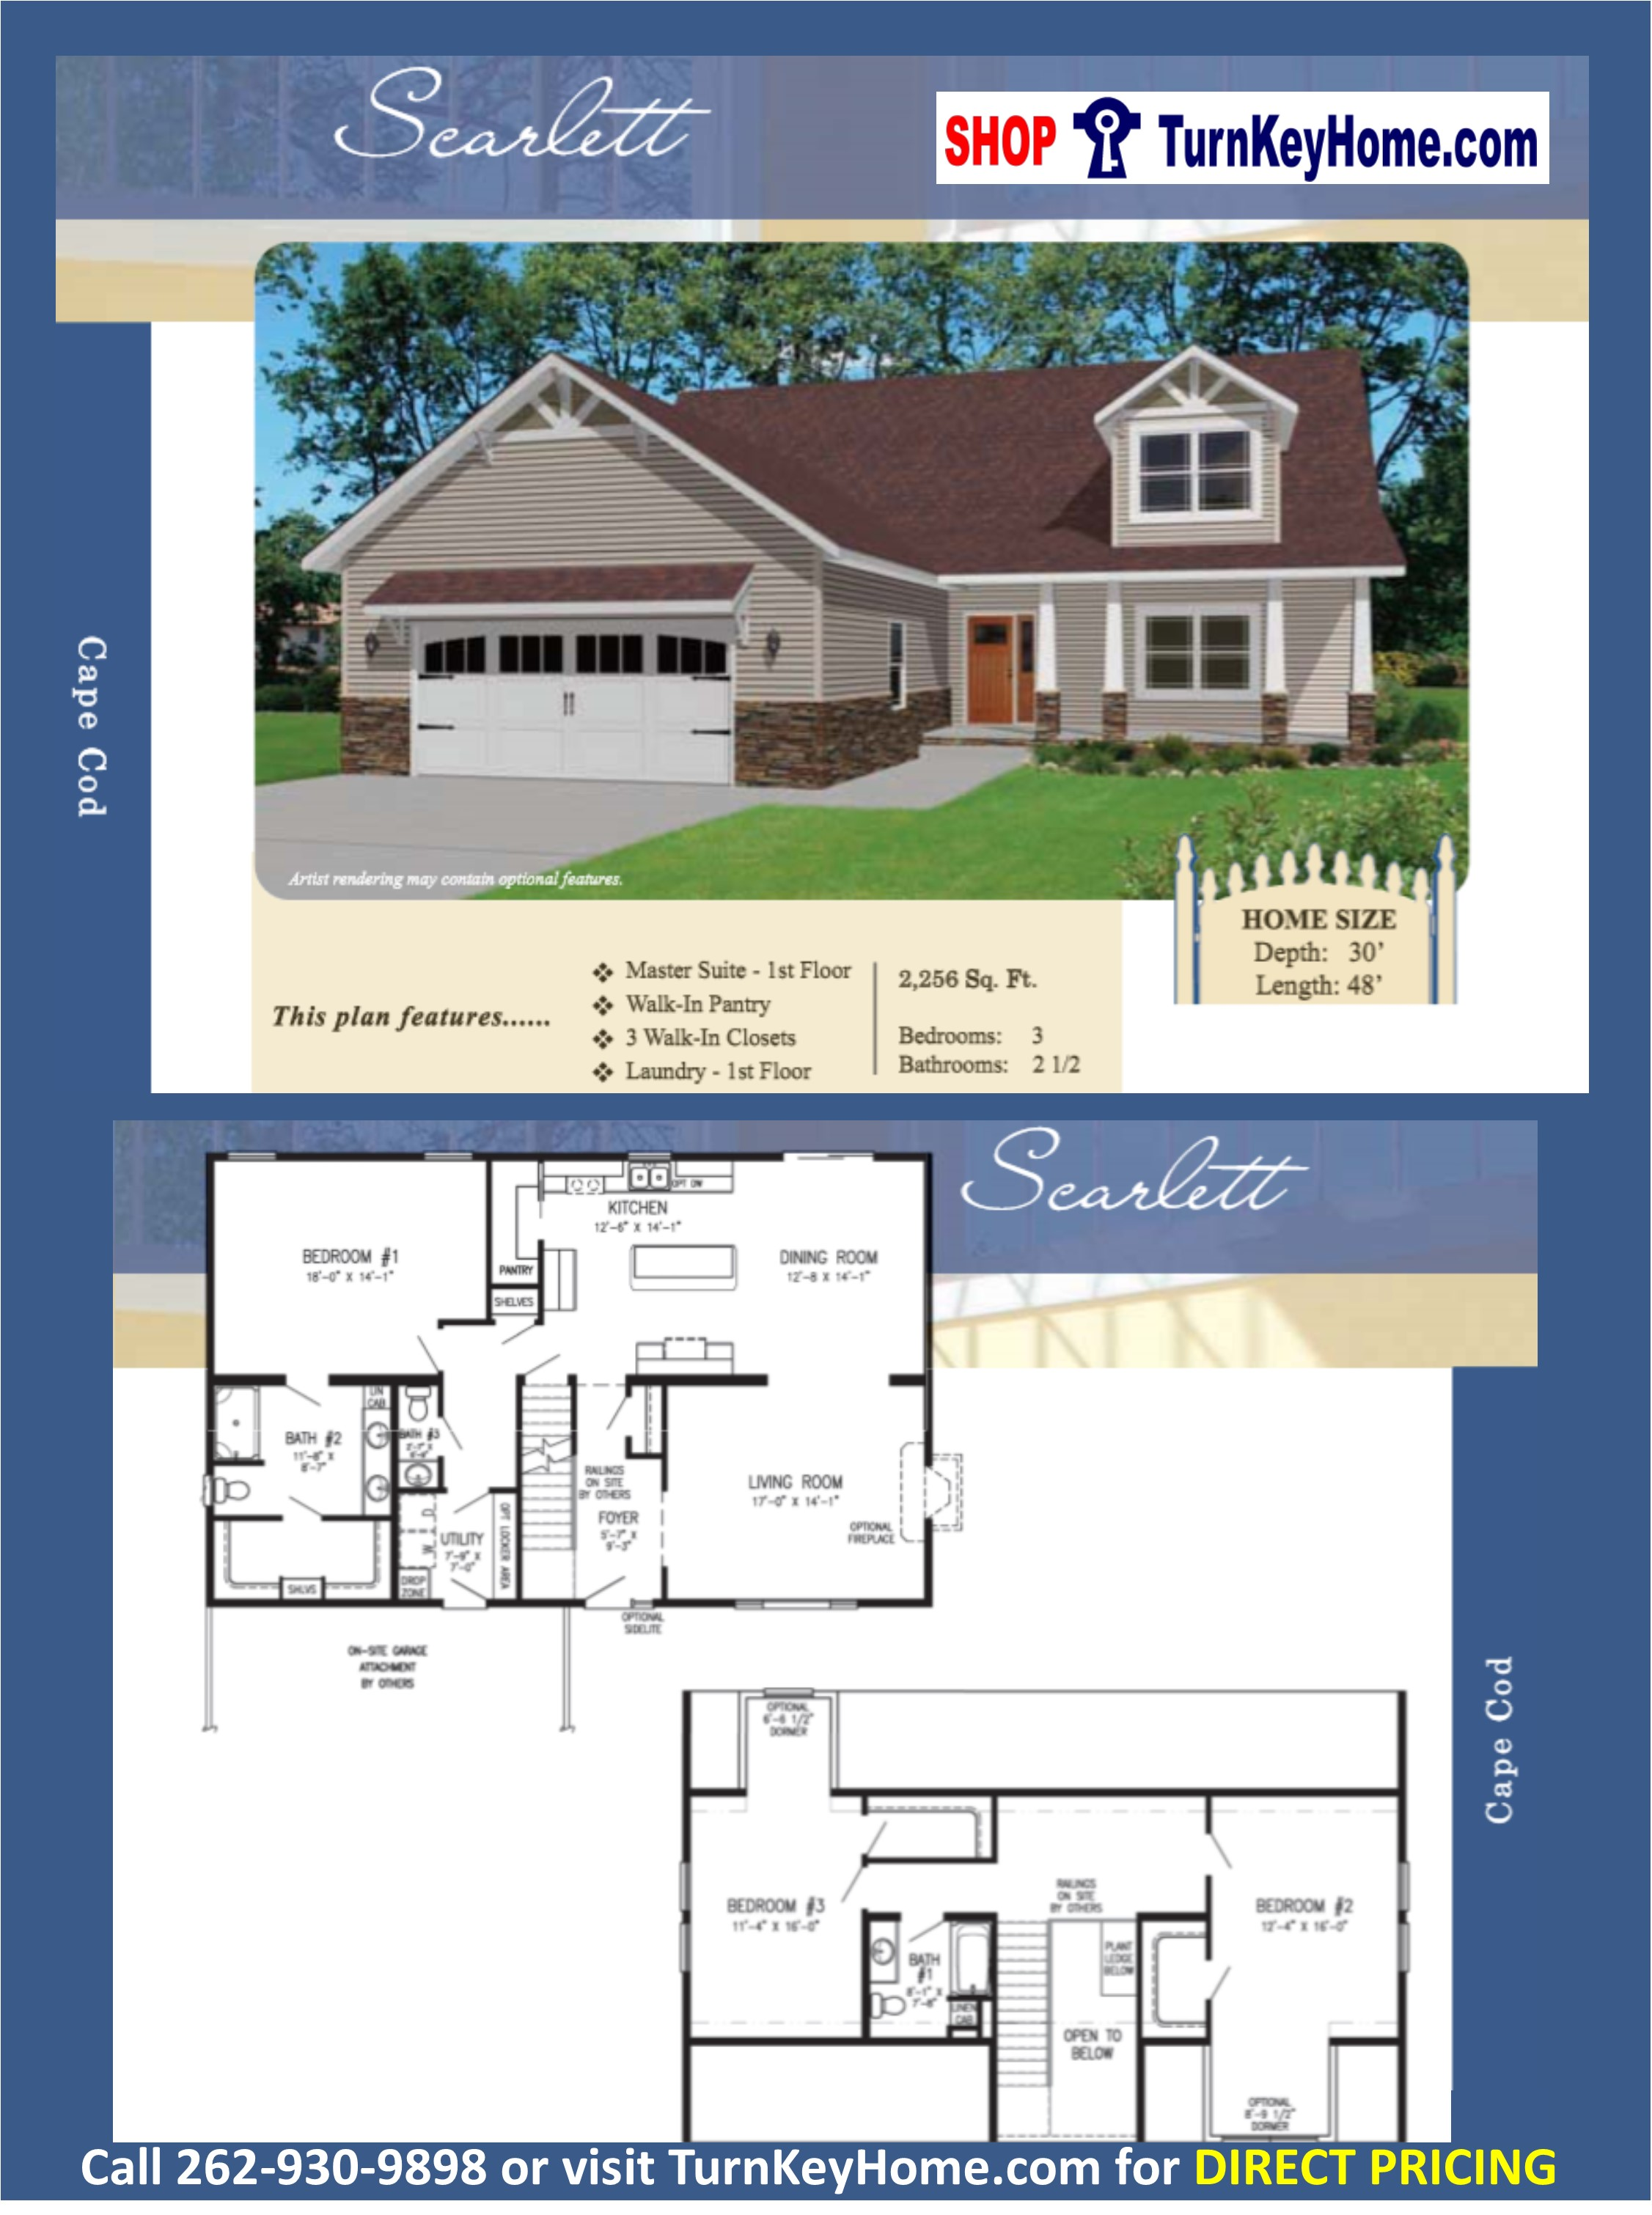 SCARLETT Cape Cod Home 3 Bed 2.5 Bath Plan 2256 SF Priced From ...